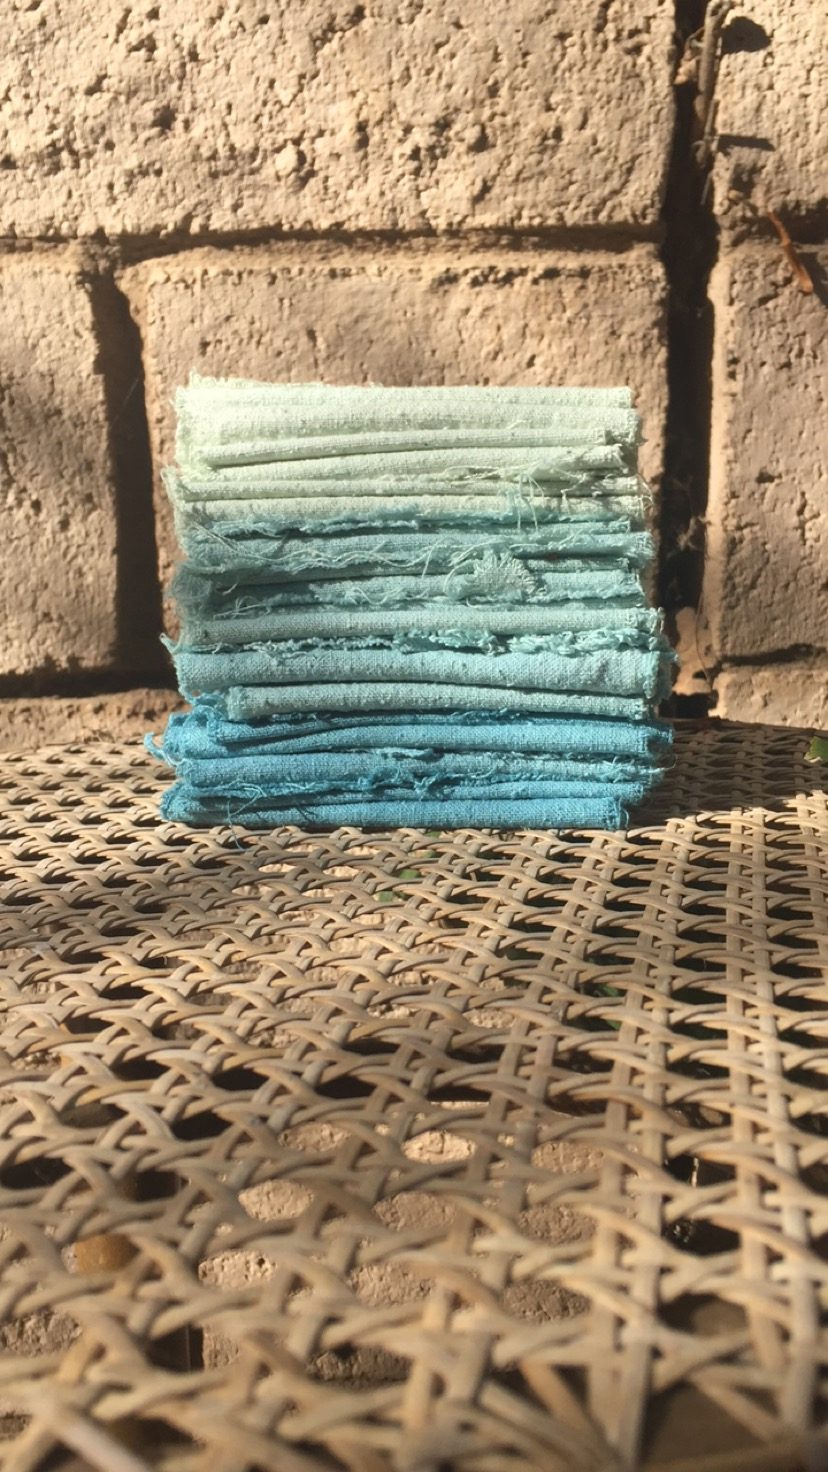 fresh indigo dyed raw silk- from bottom to top a range of blues and greens produced as the dye bath exhausts